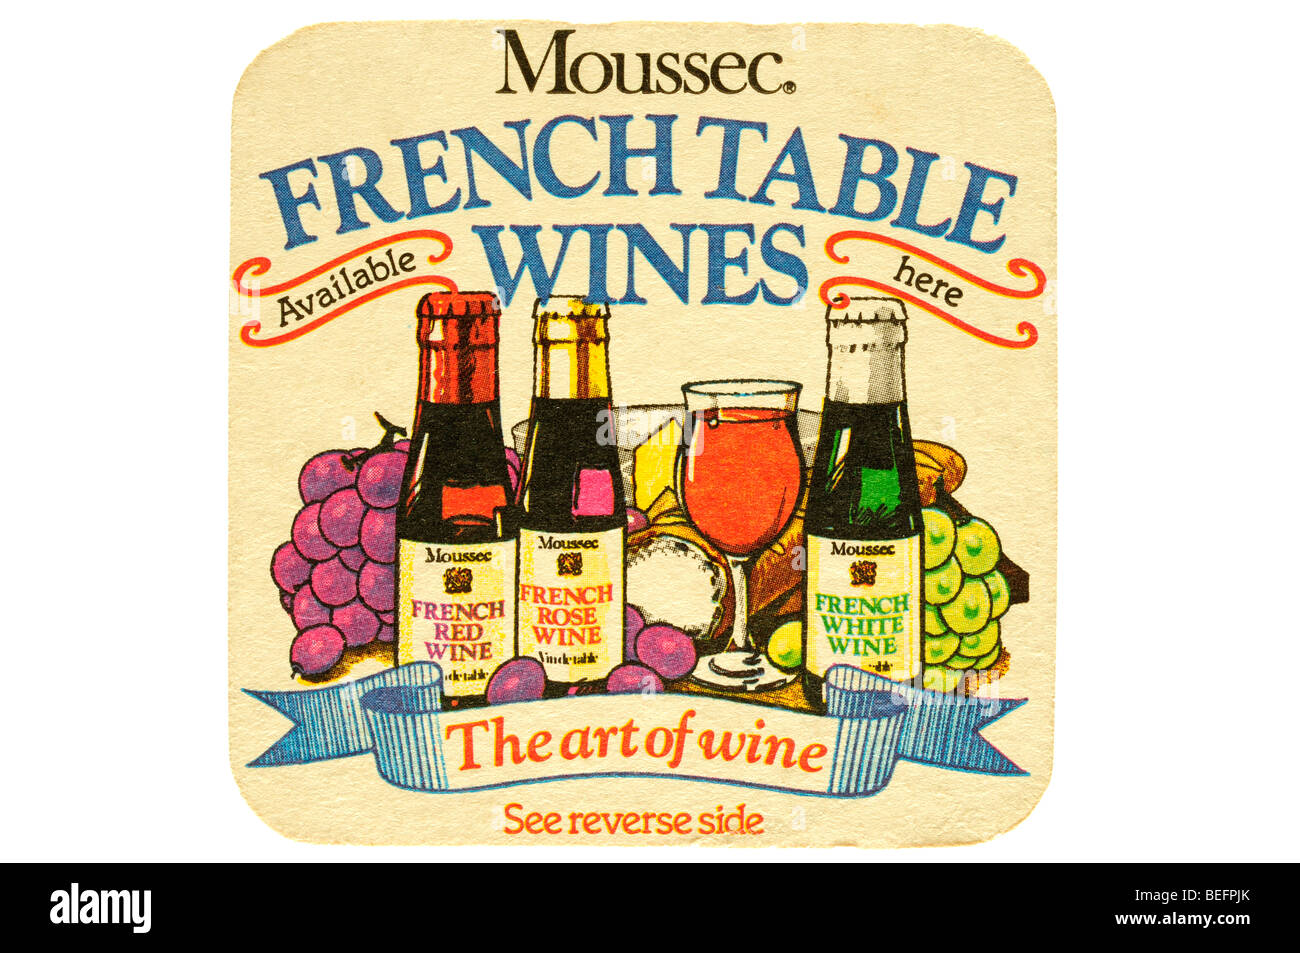 moussec french table wines available here the art of wine - Stock Image